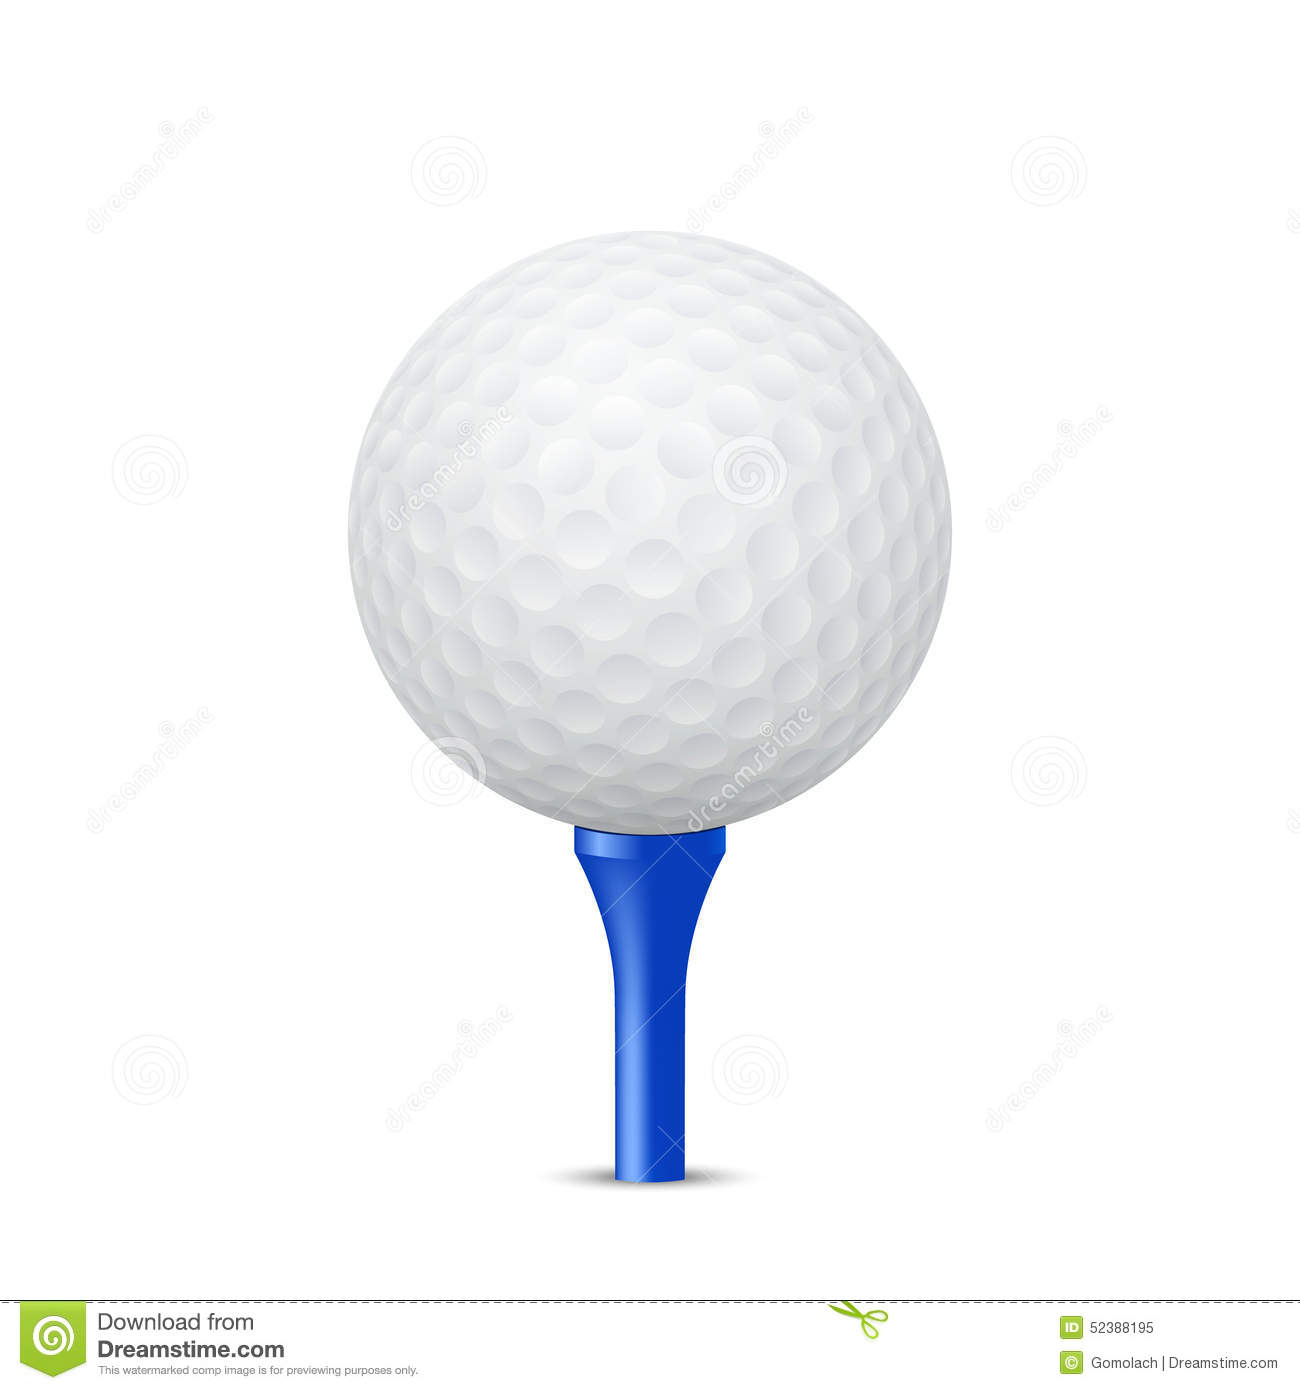 627cc295 Golf Ball On A Blue Tee. Vector Illustration. Stock Vector ...